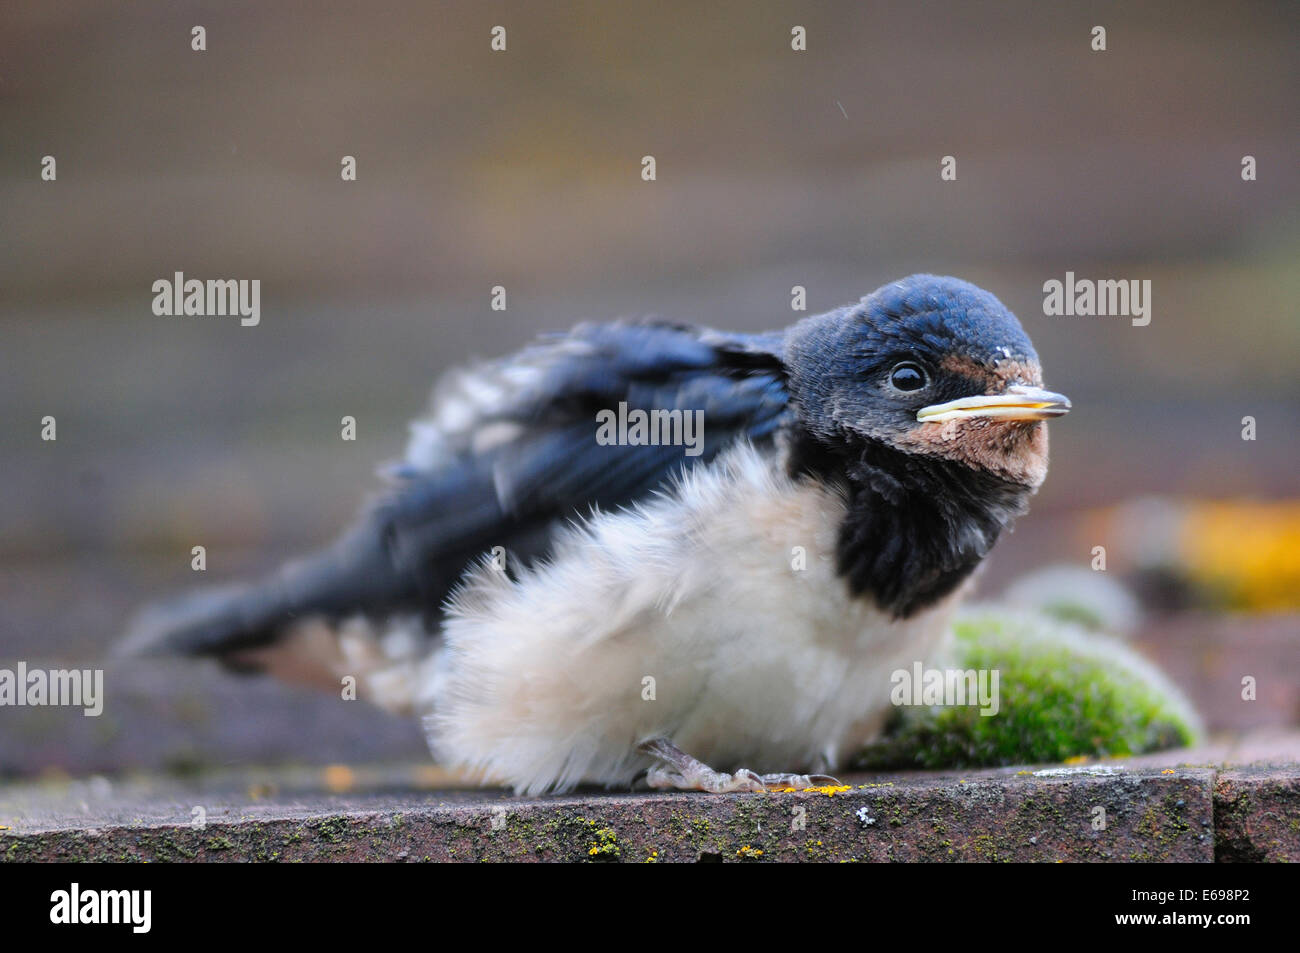 Swallow fledgeling on roof tiles - Stock Image